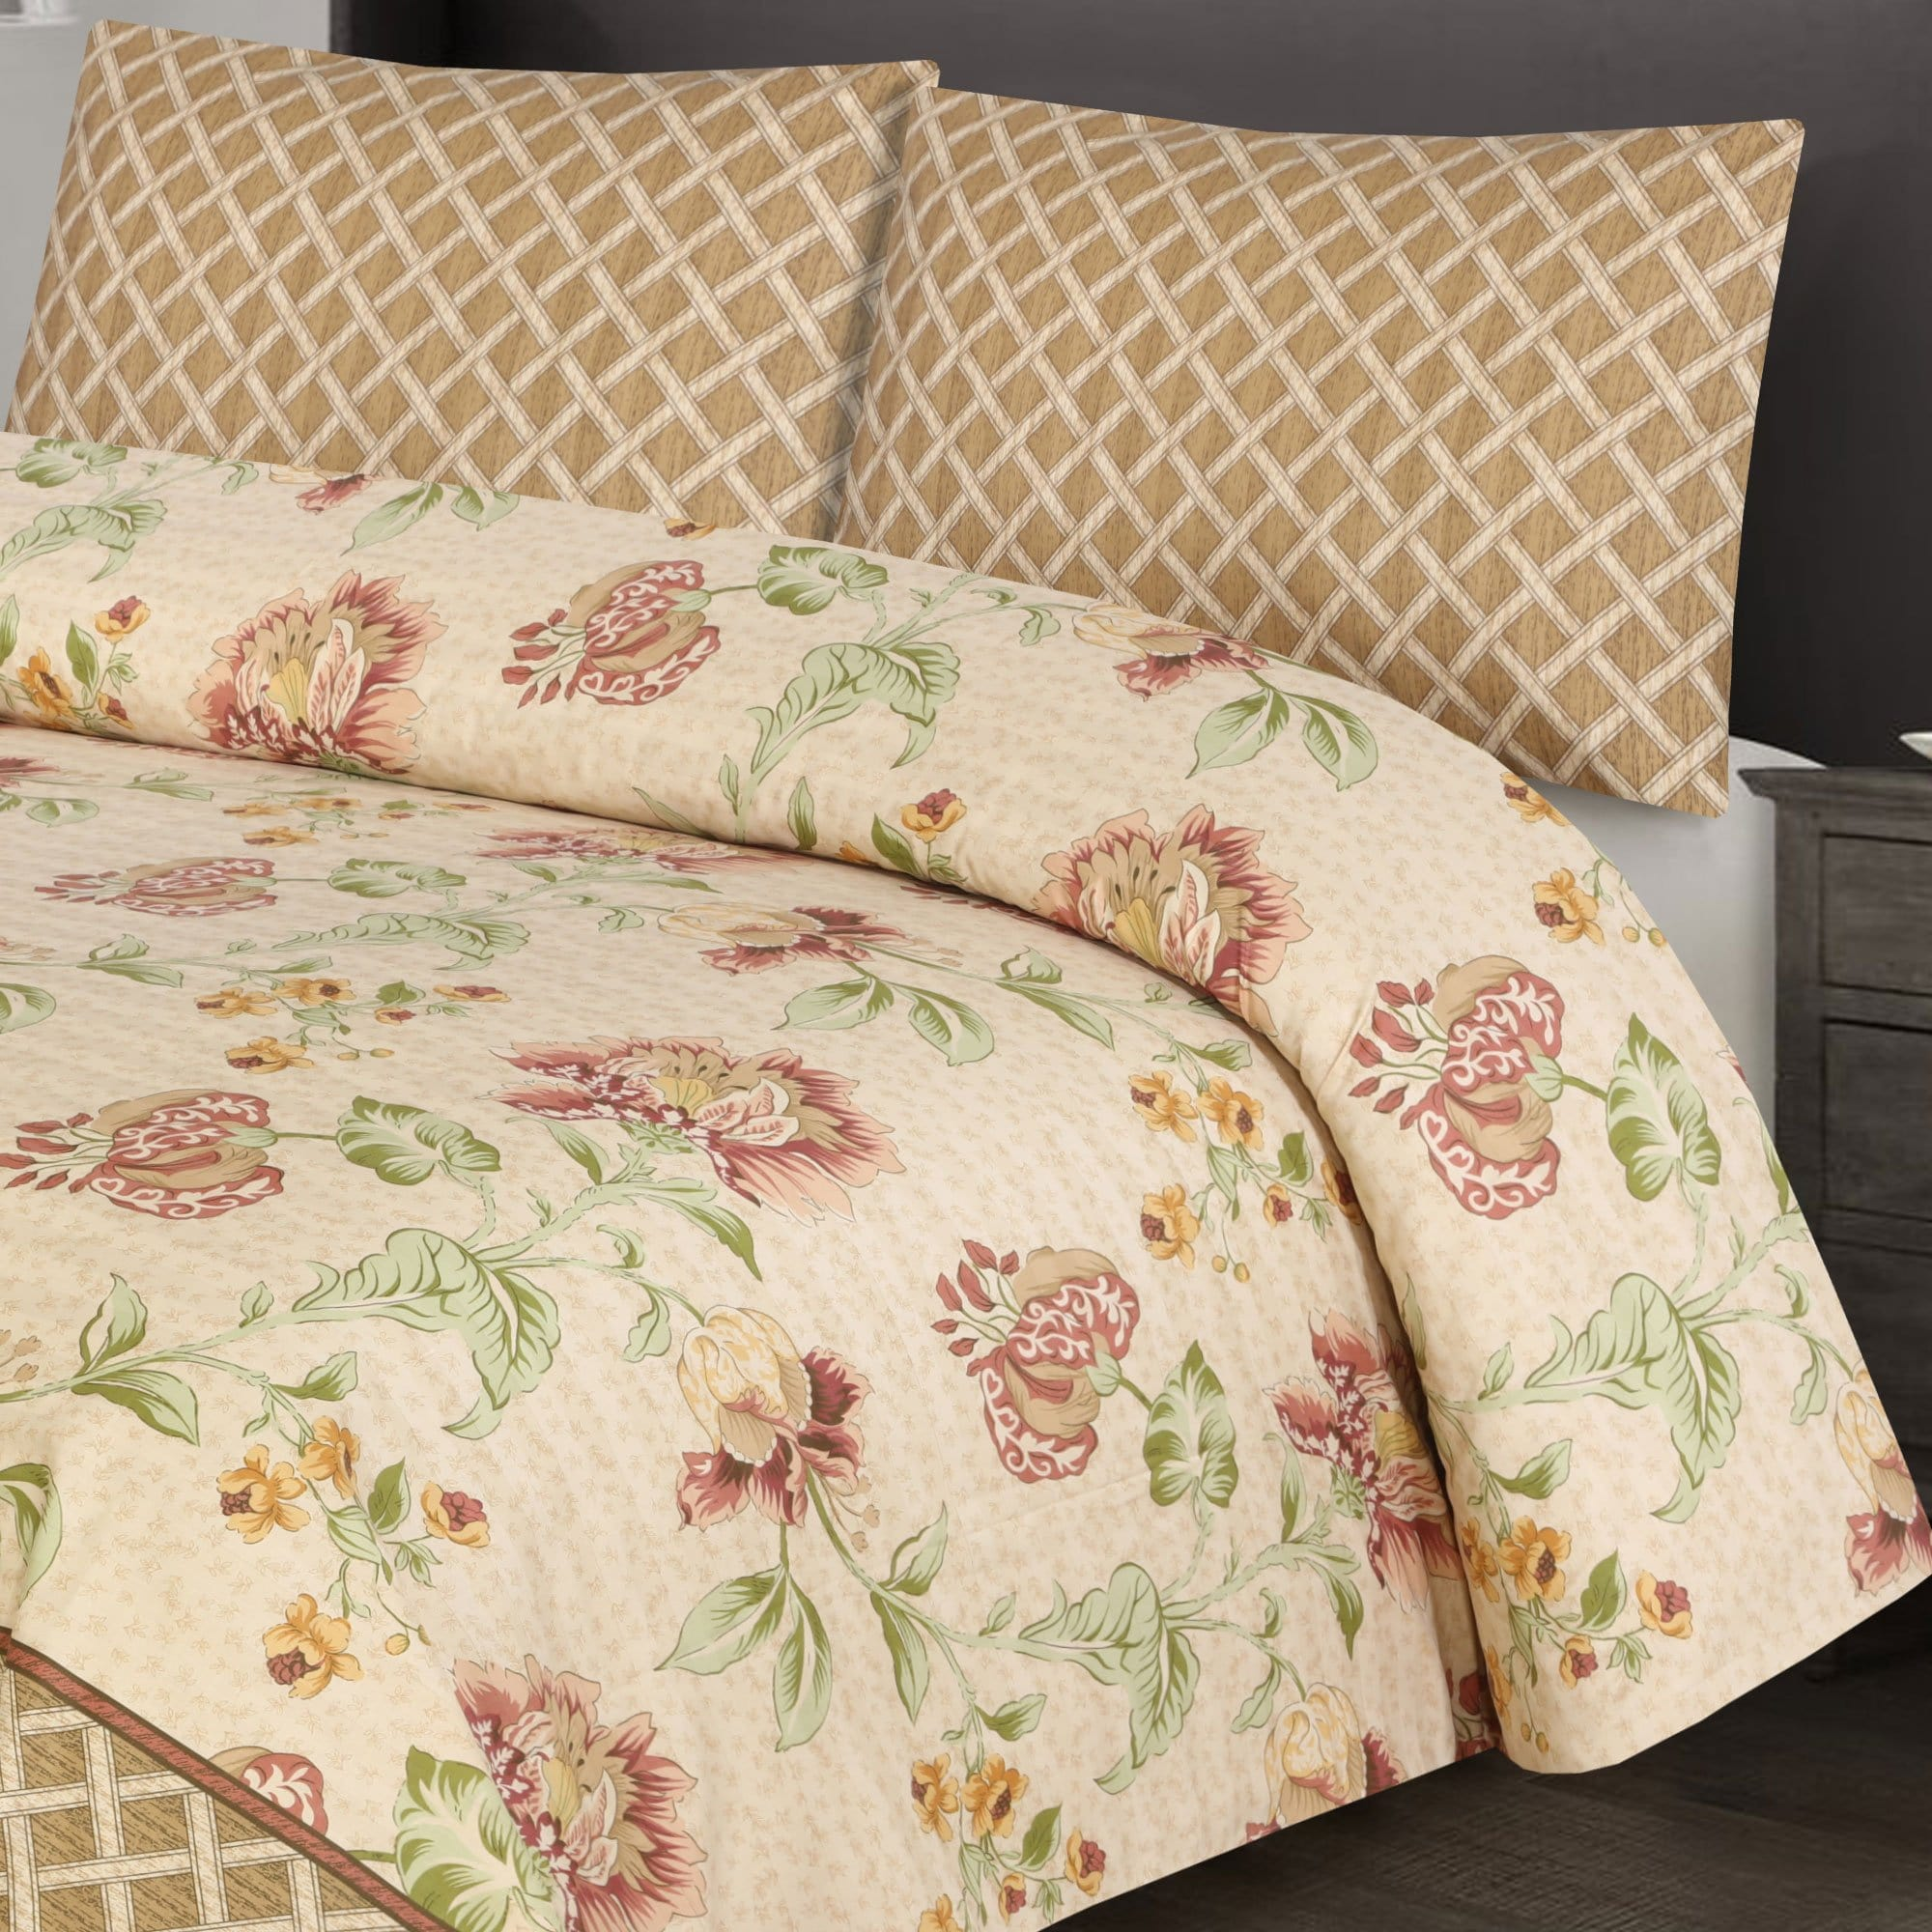 Grace D380-Reactive cotton Satin Quality king size Bedsheet with 2 pillow covers.